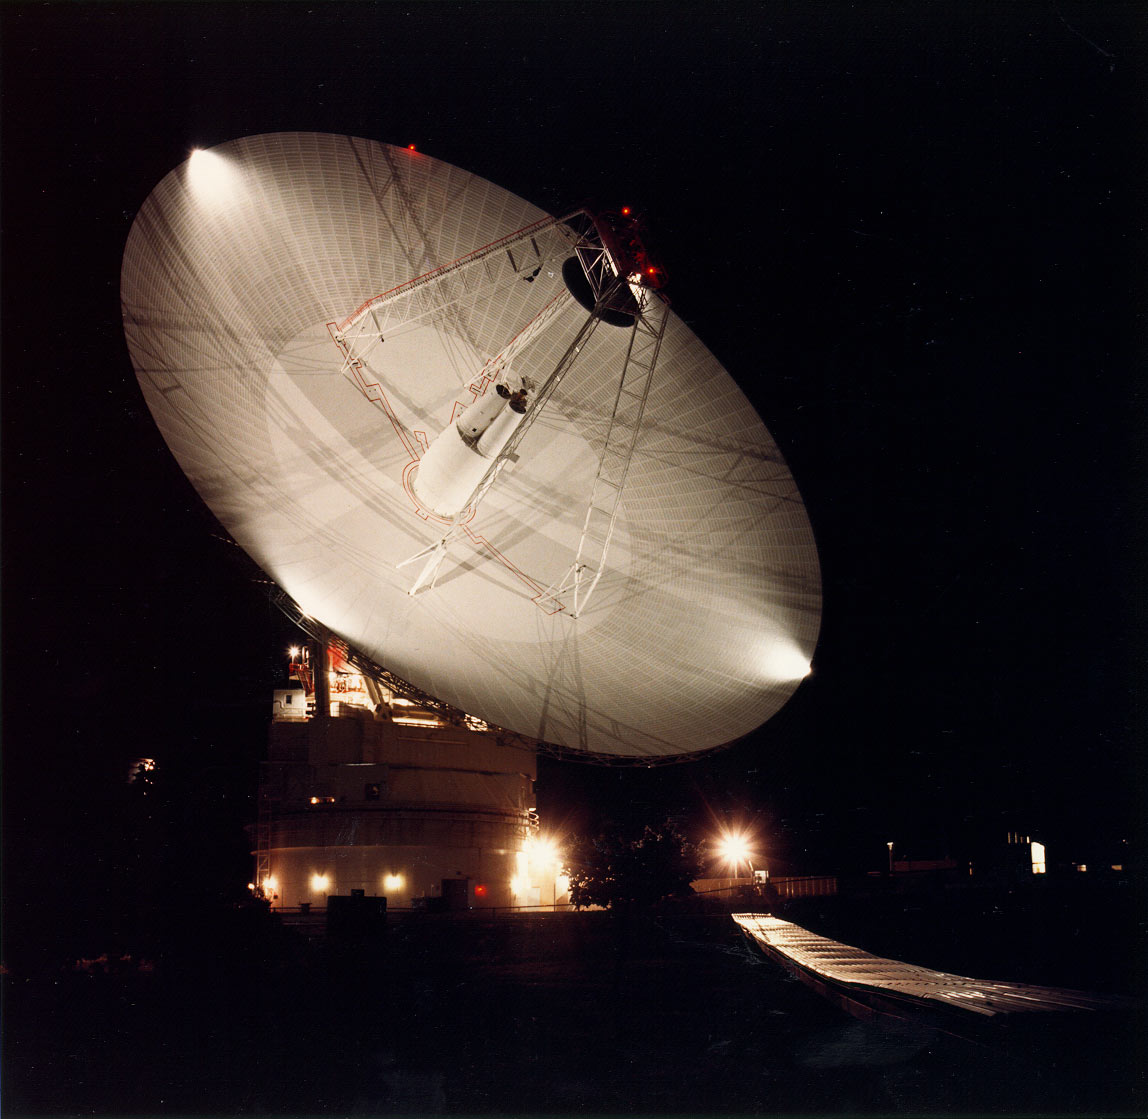 Night shot of the 70m antenna at Goldstone, California. Image credit: NASA